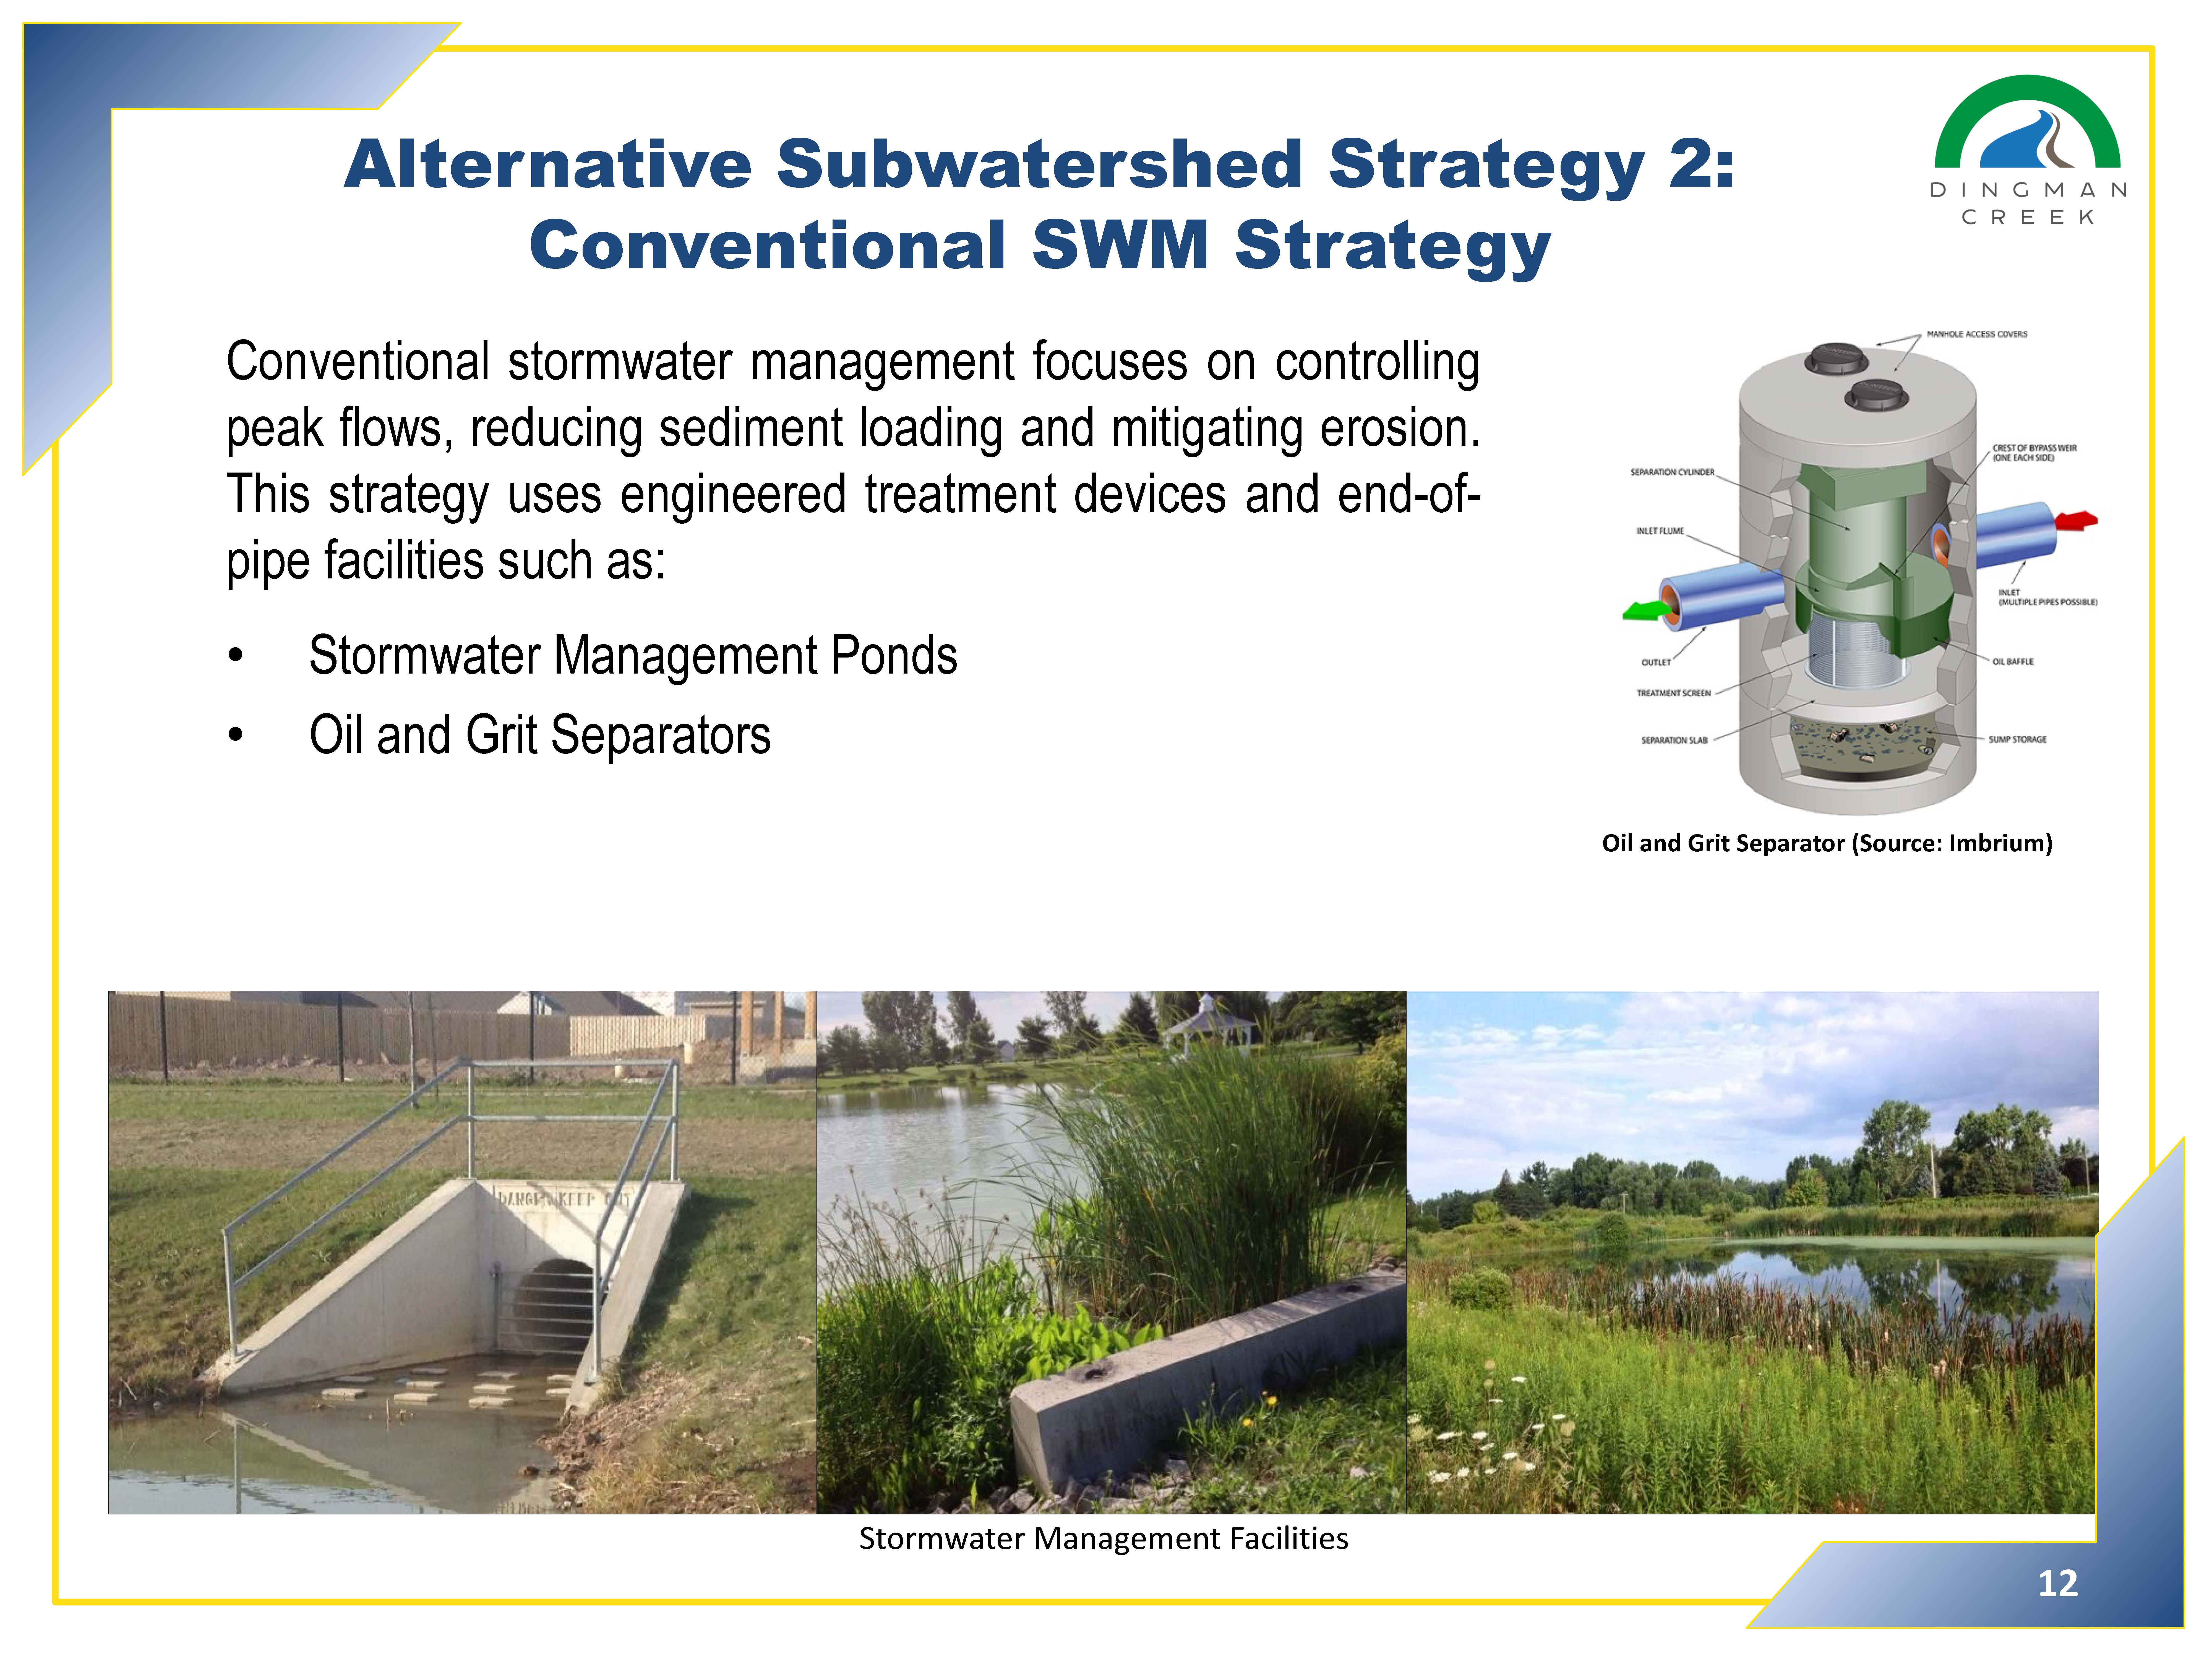 Alternative subwatershed strategies 2 - Conventional SWM Strategy